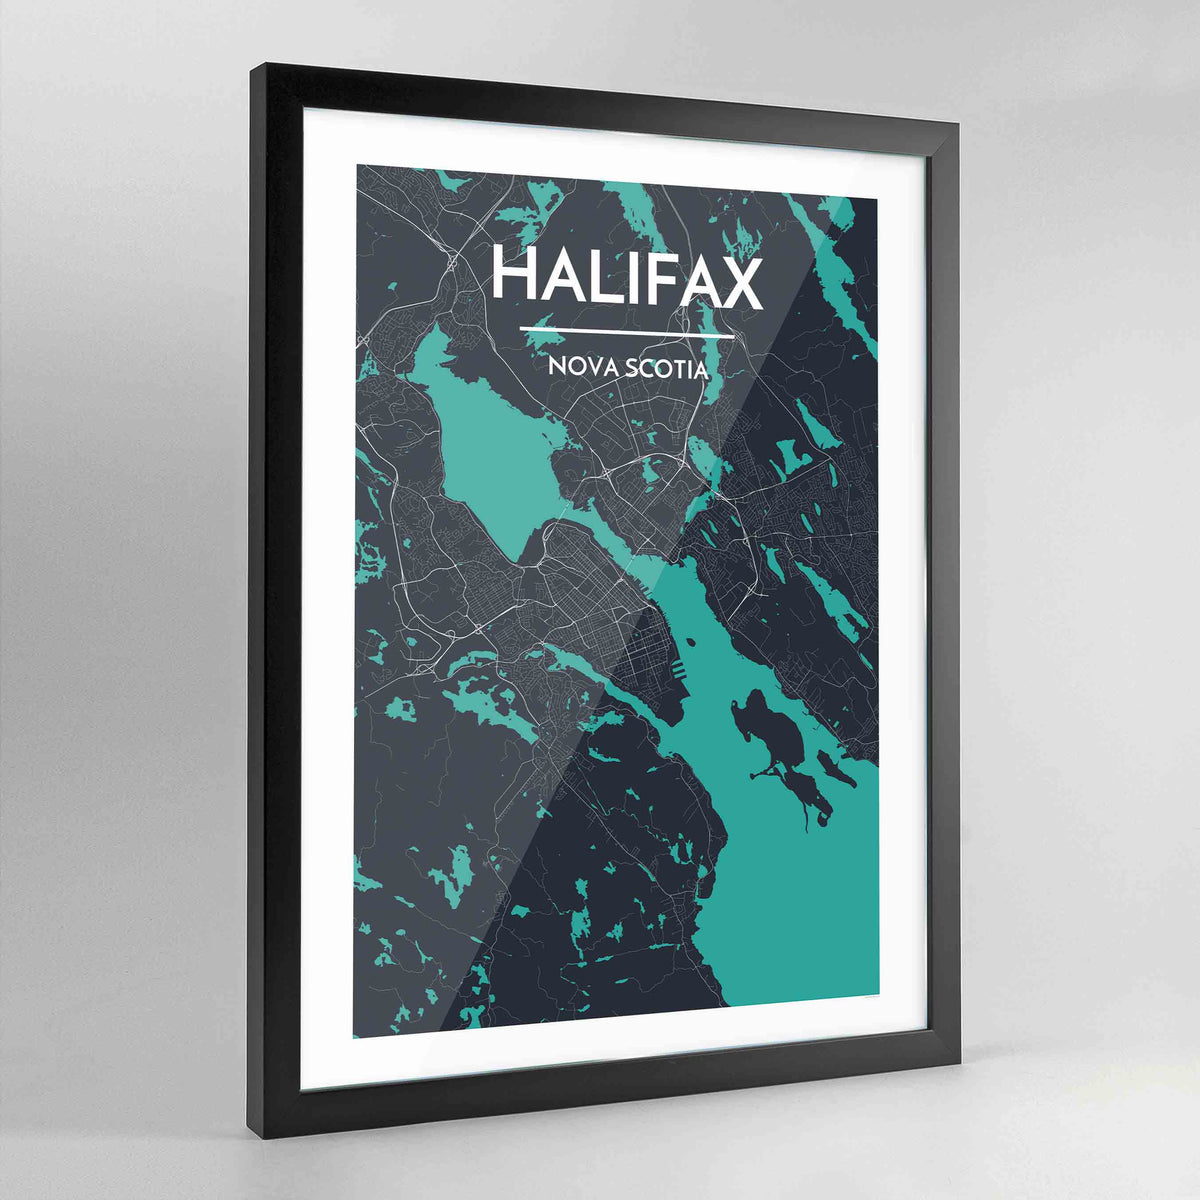 Framed Halifax City Map Art Print - Point Two Design